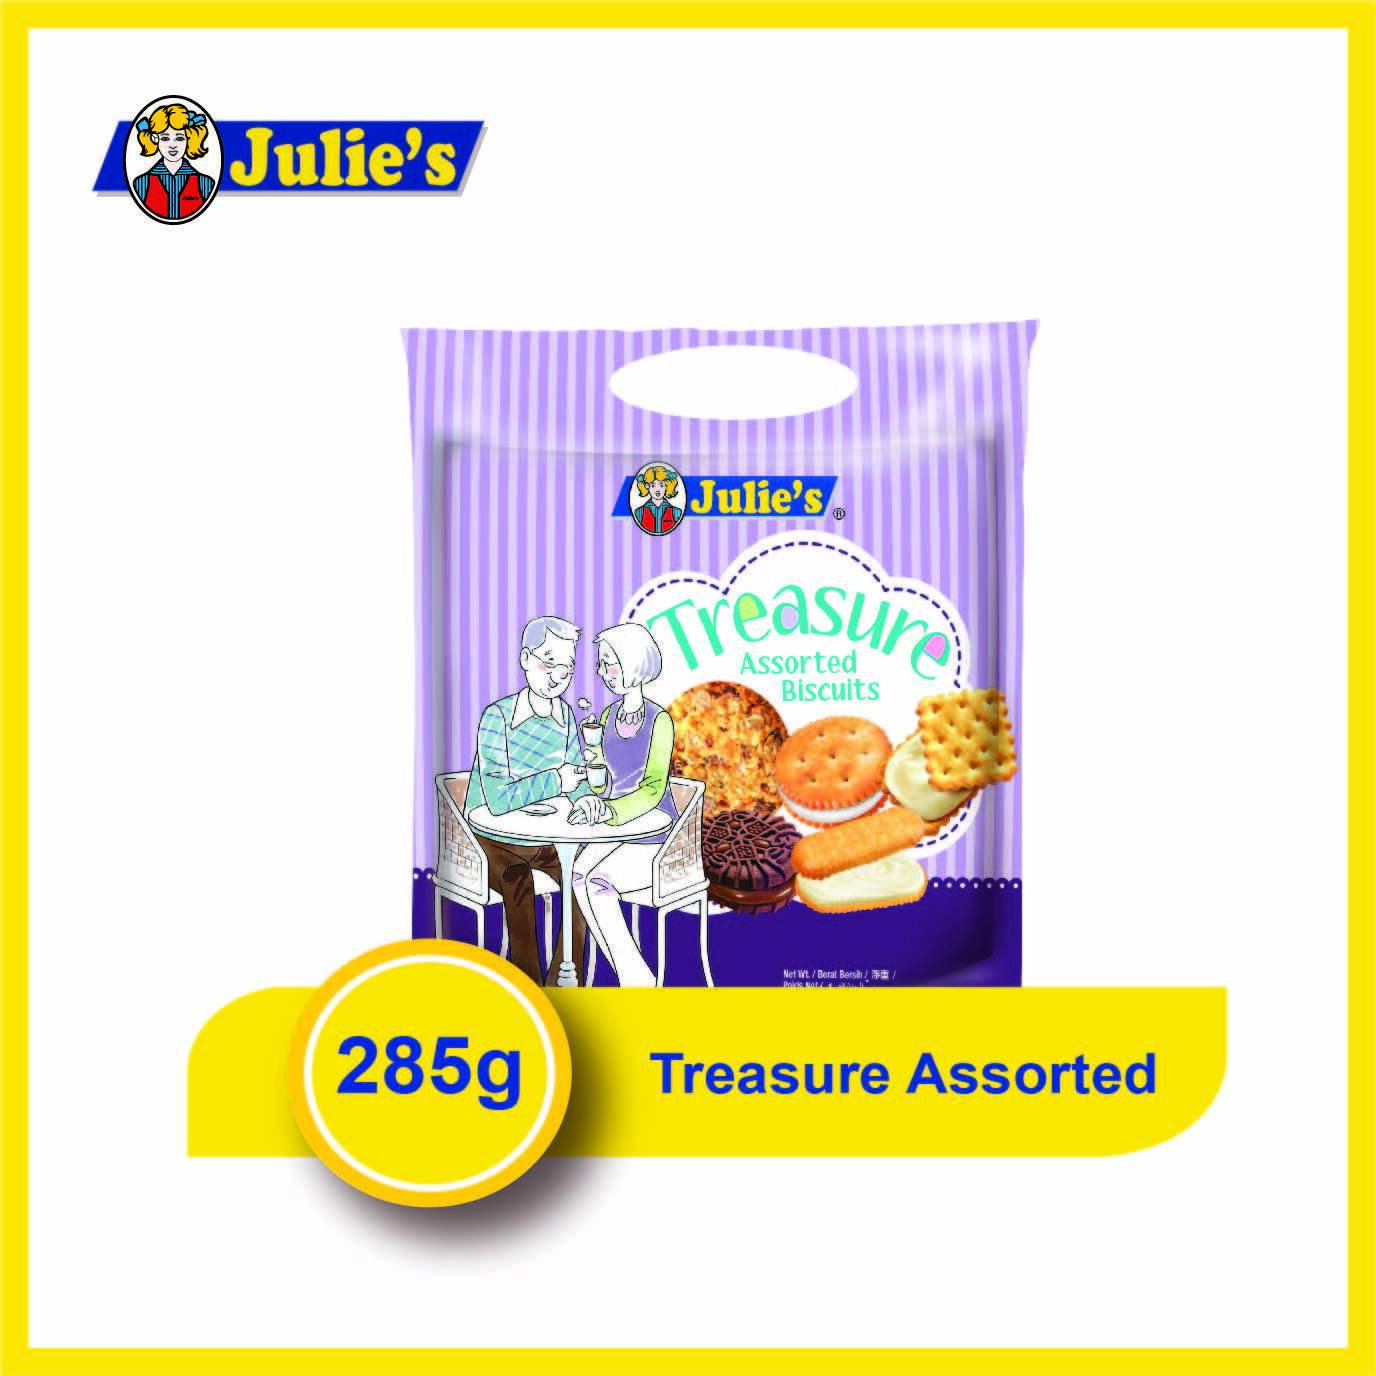 Julies Treasure Assorted Biscuits 285g x 1 pack